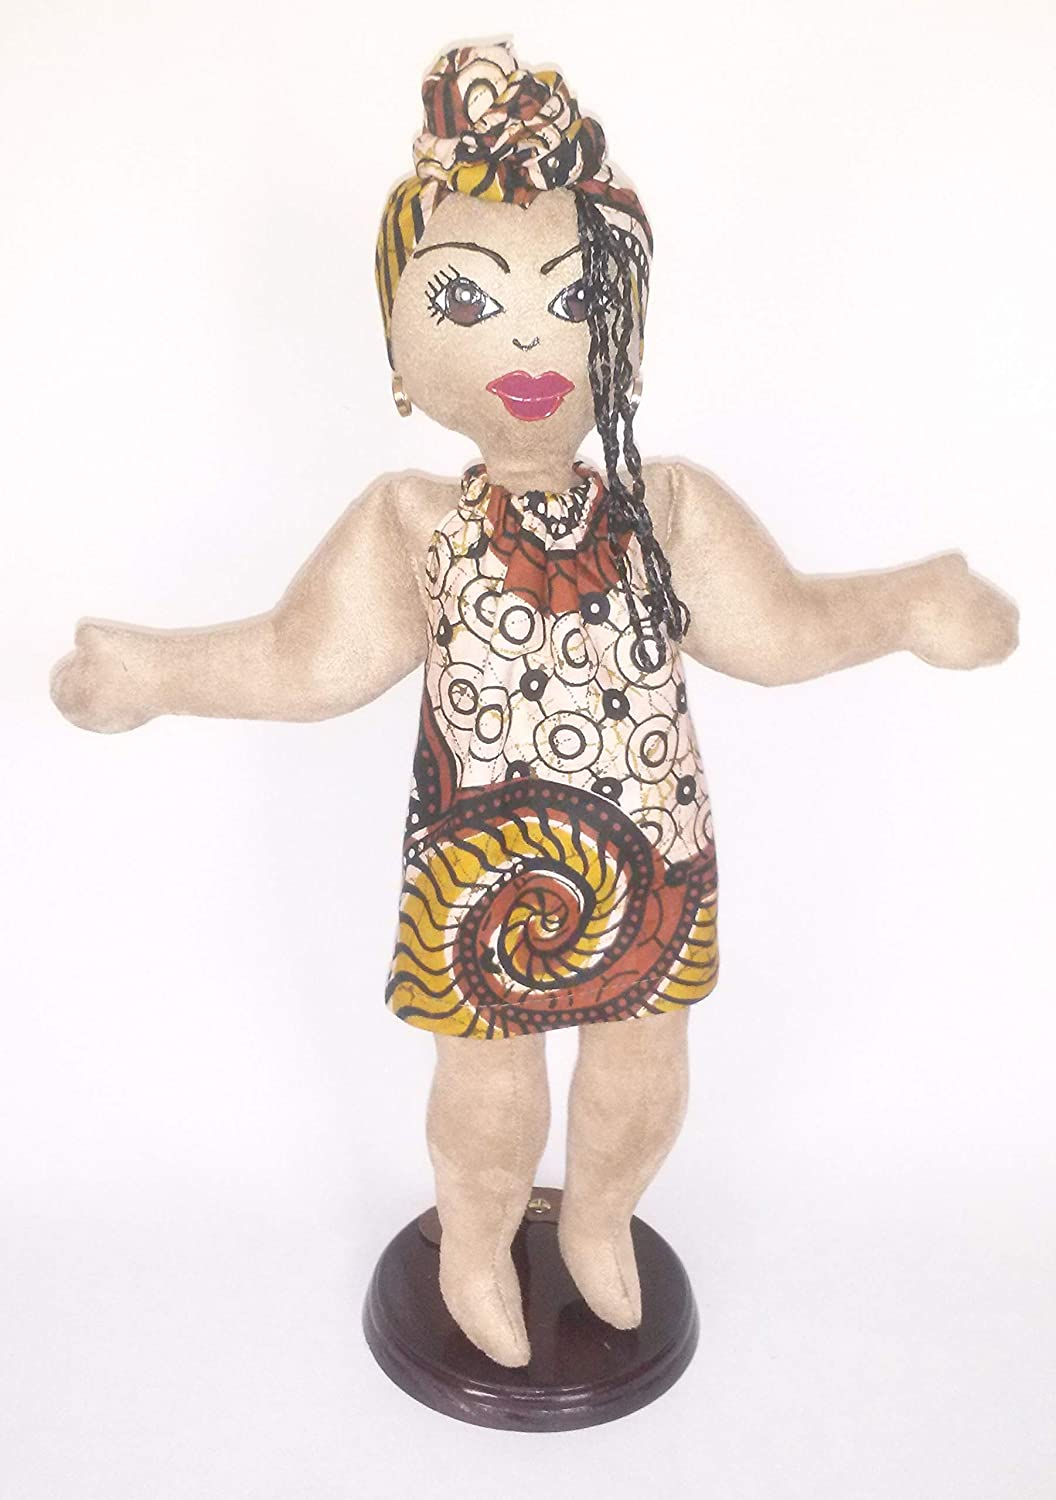 African Inspired Hand Painted Black Doll Maker Multicultural Doll Black Doll 14 inch Doll Head Wrap African American Doll Natural Hair Styles Ethnic Doll Handcrafted Collectible Doll